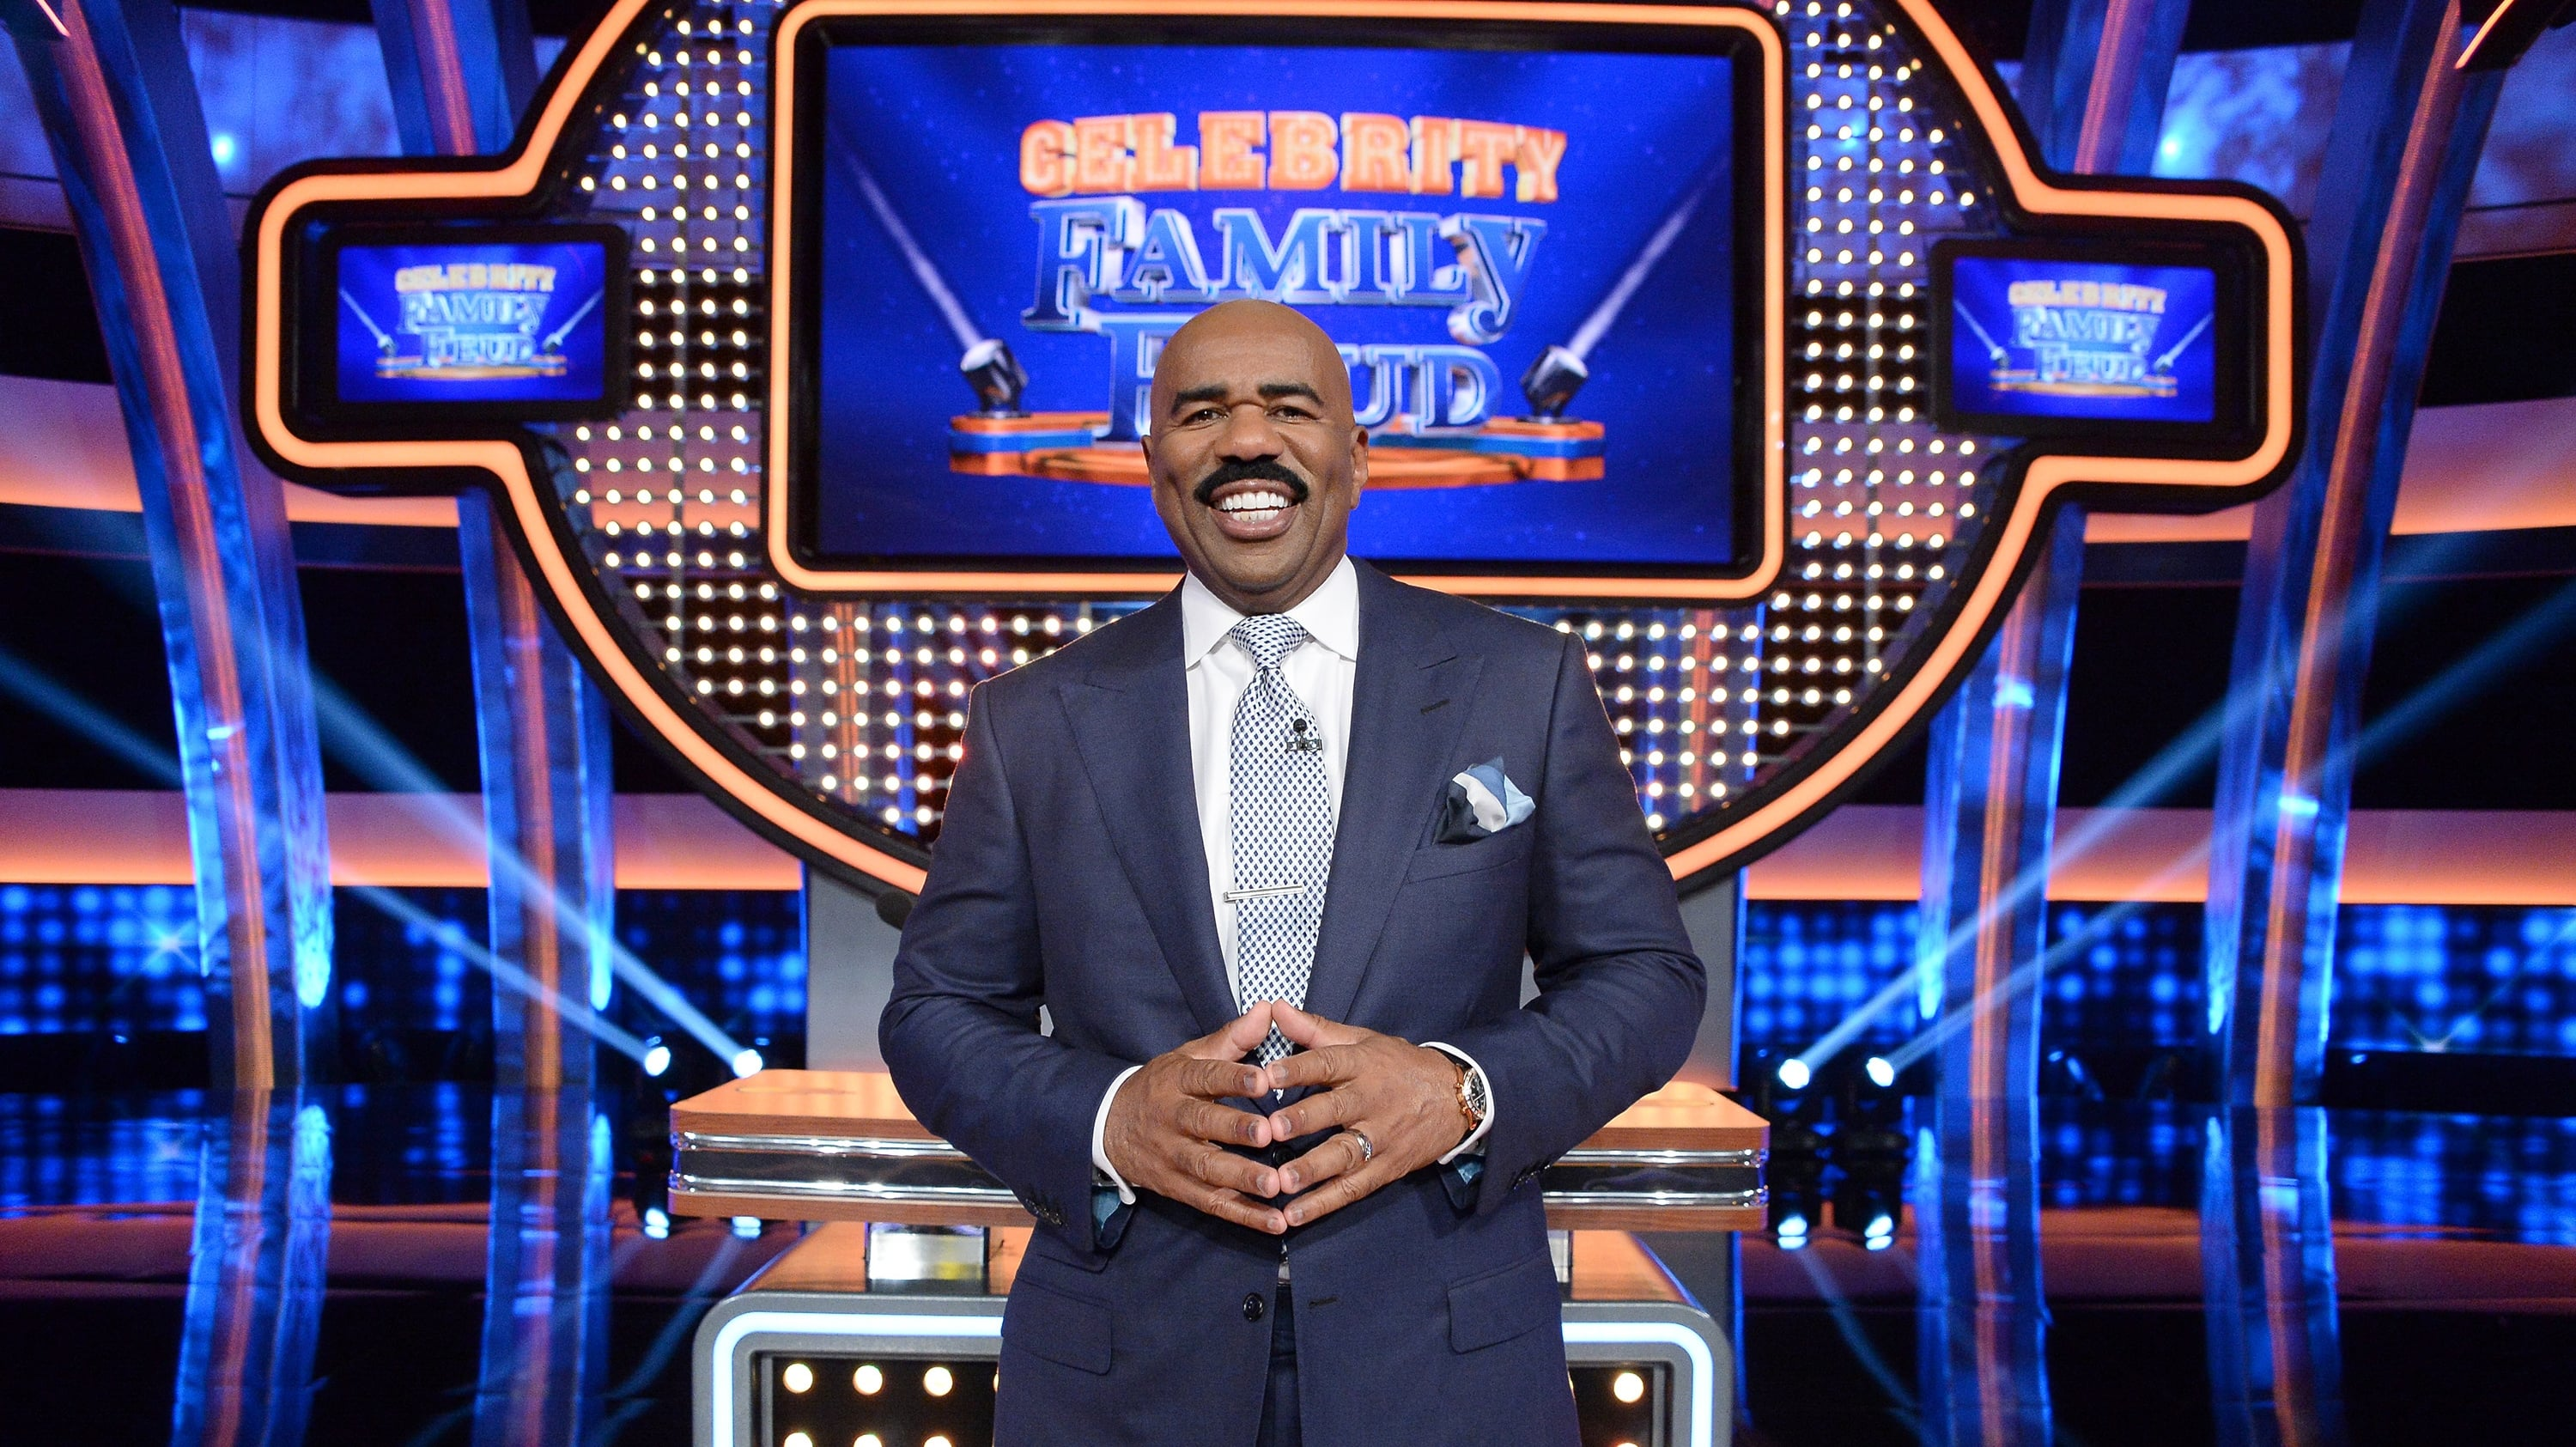 Celebrity family feud 2019 episodes